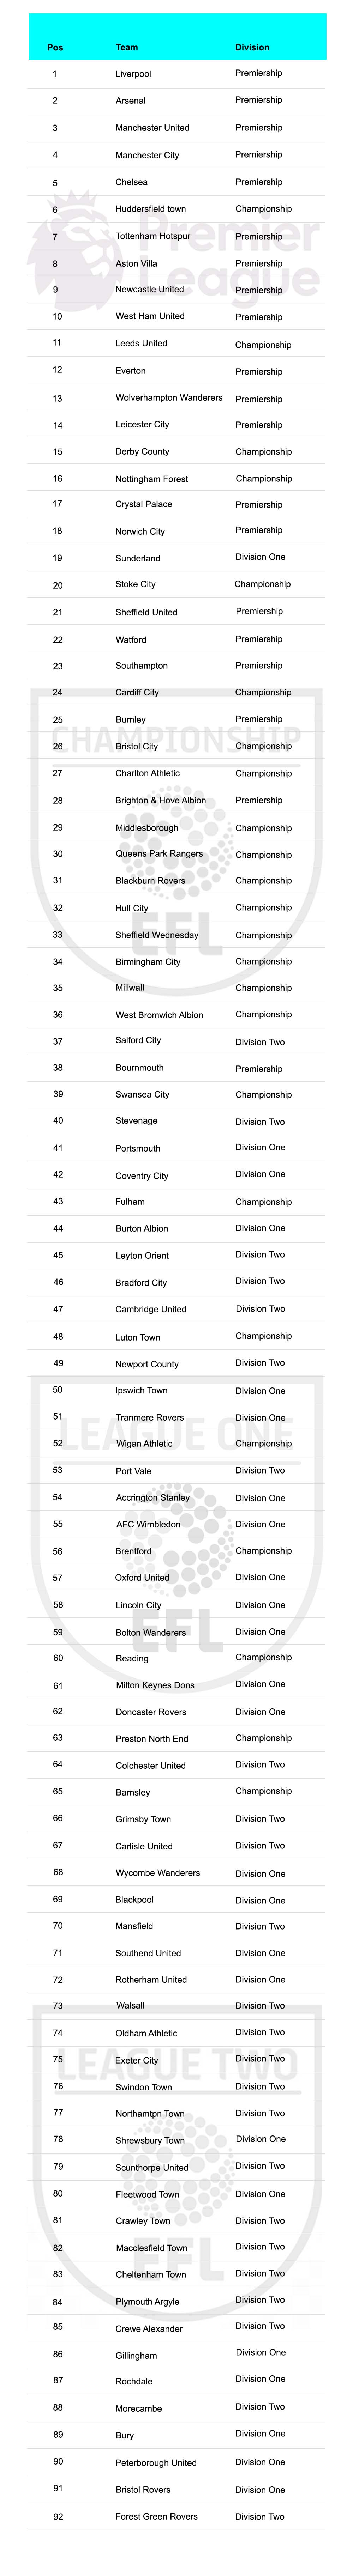 The data covers all 92 English football teams in the Premier League, Championship, League One and League Two divisions. This is an accumulation of data from a football teams home, away, reserve & keeper kits.